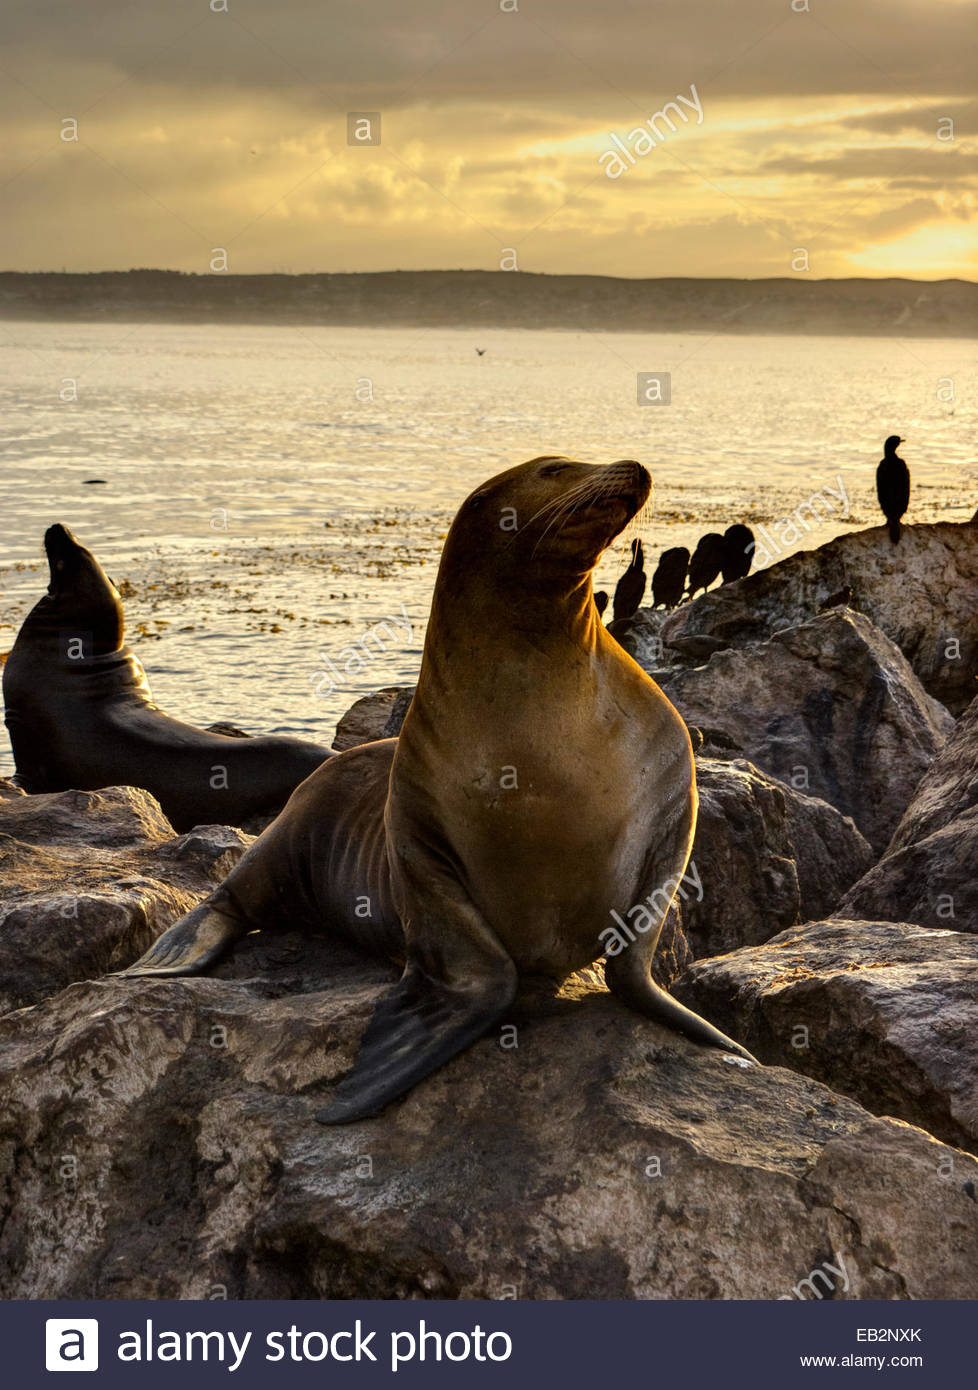 California Sea Lions And Cormorants Greet The Morning Sun On The